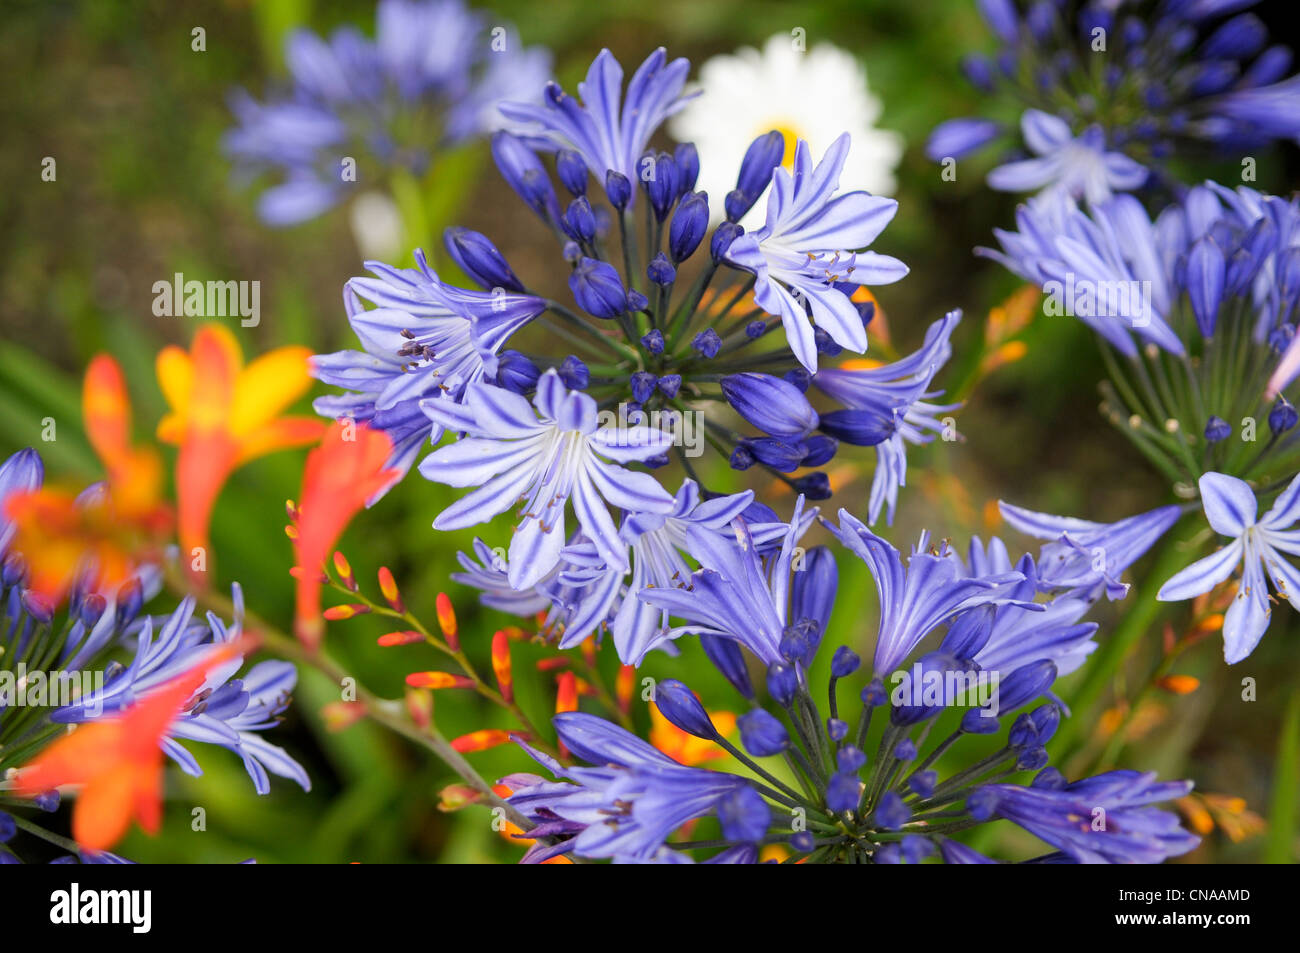 France, Cotes d'Armor, Brehat island flower of Agapanthus (Agapanthus Navy Blue) - Stock Image